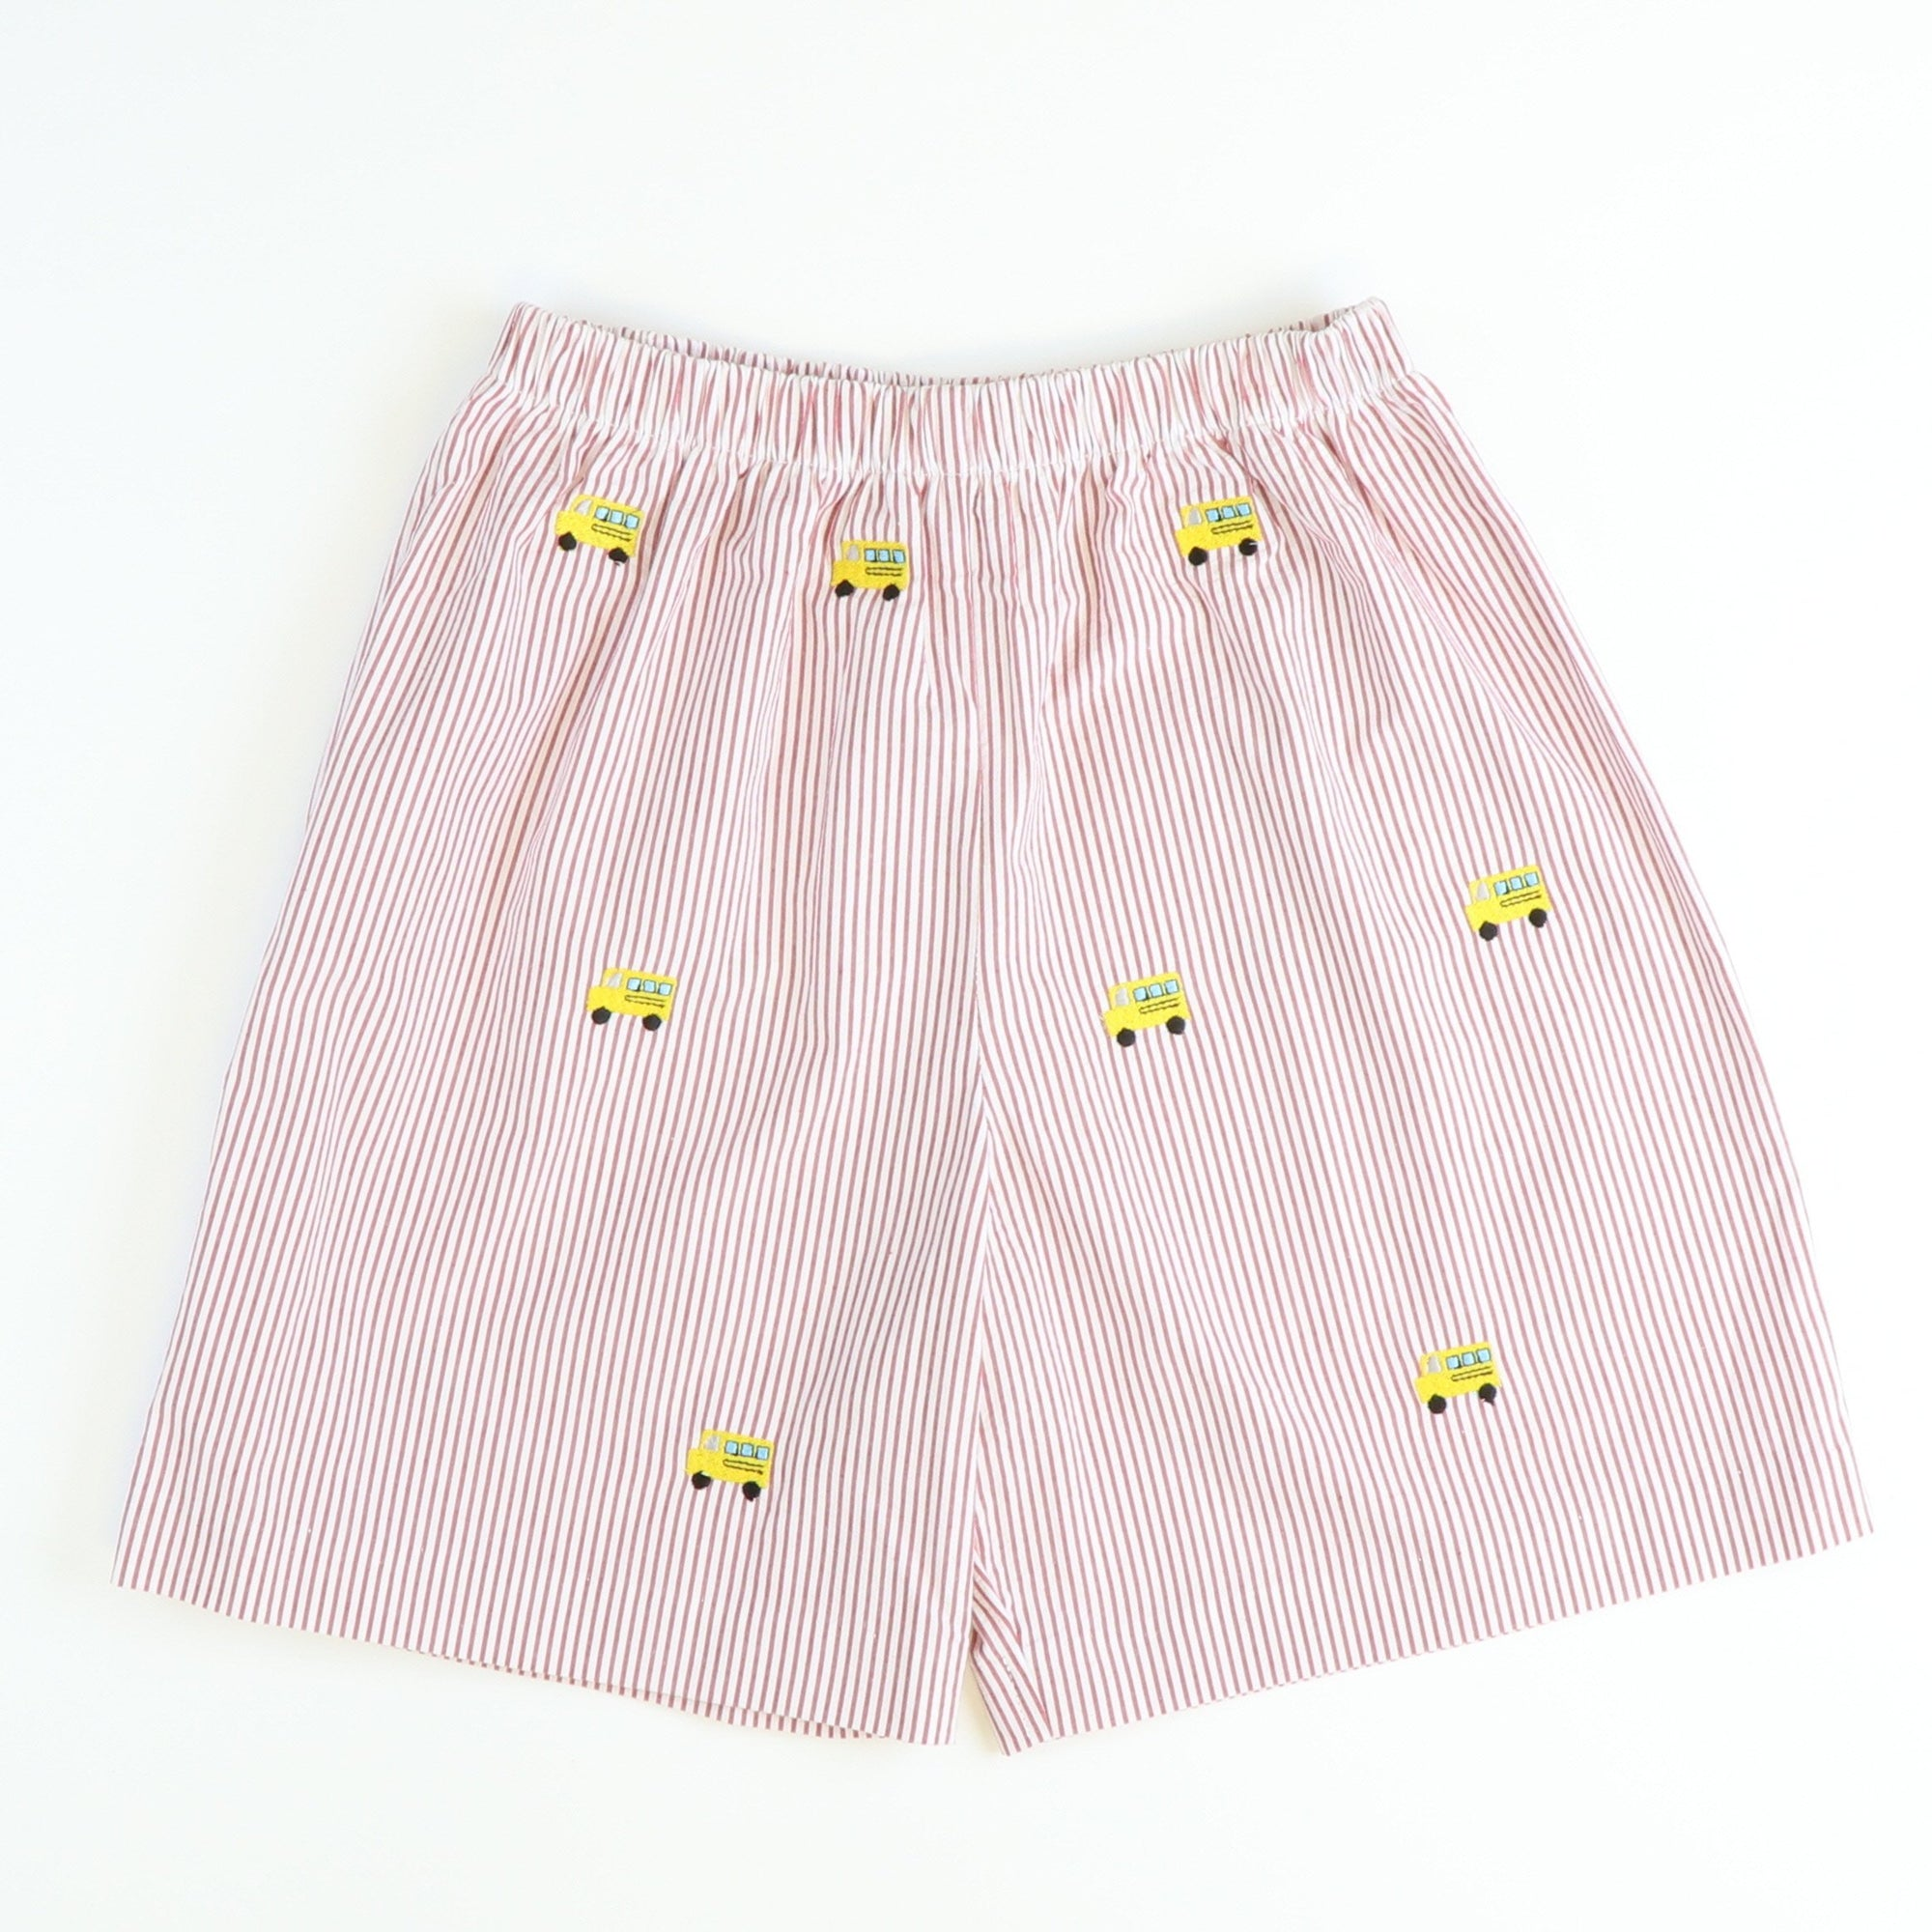 Embroidered School Buses Shorts - Red Stripe Seersucker